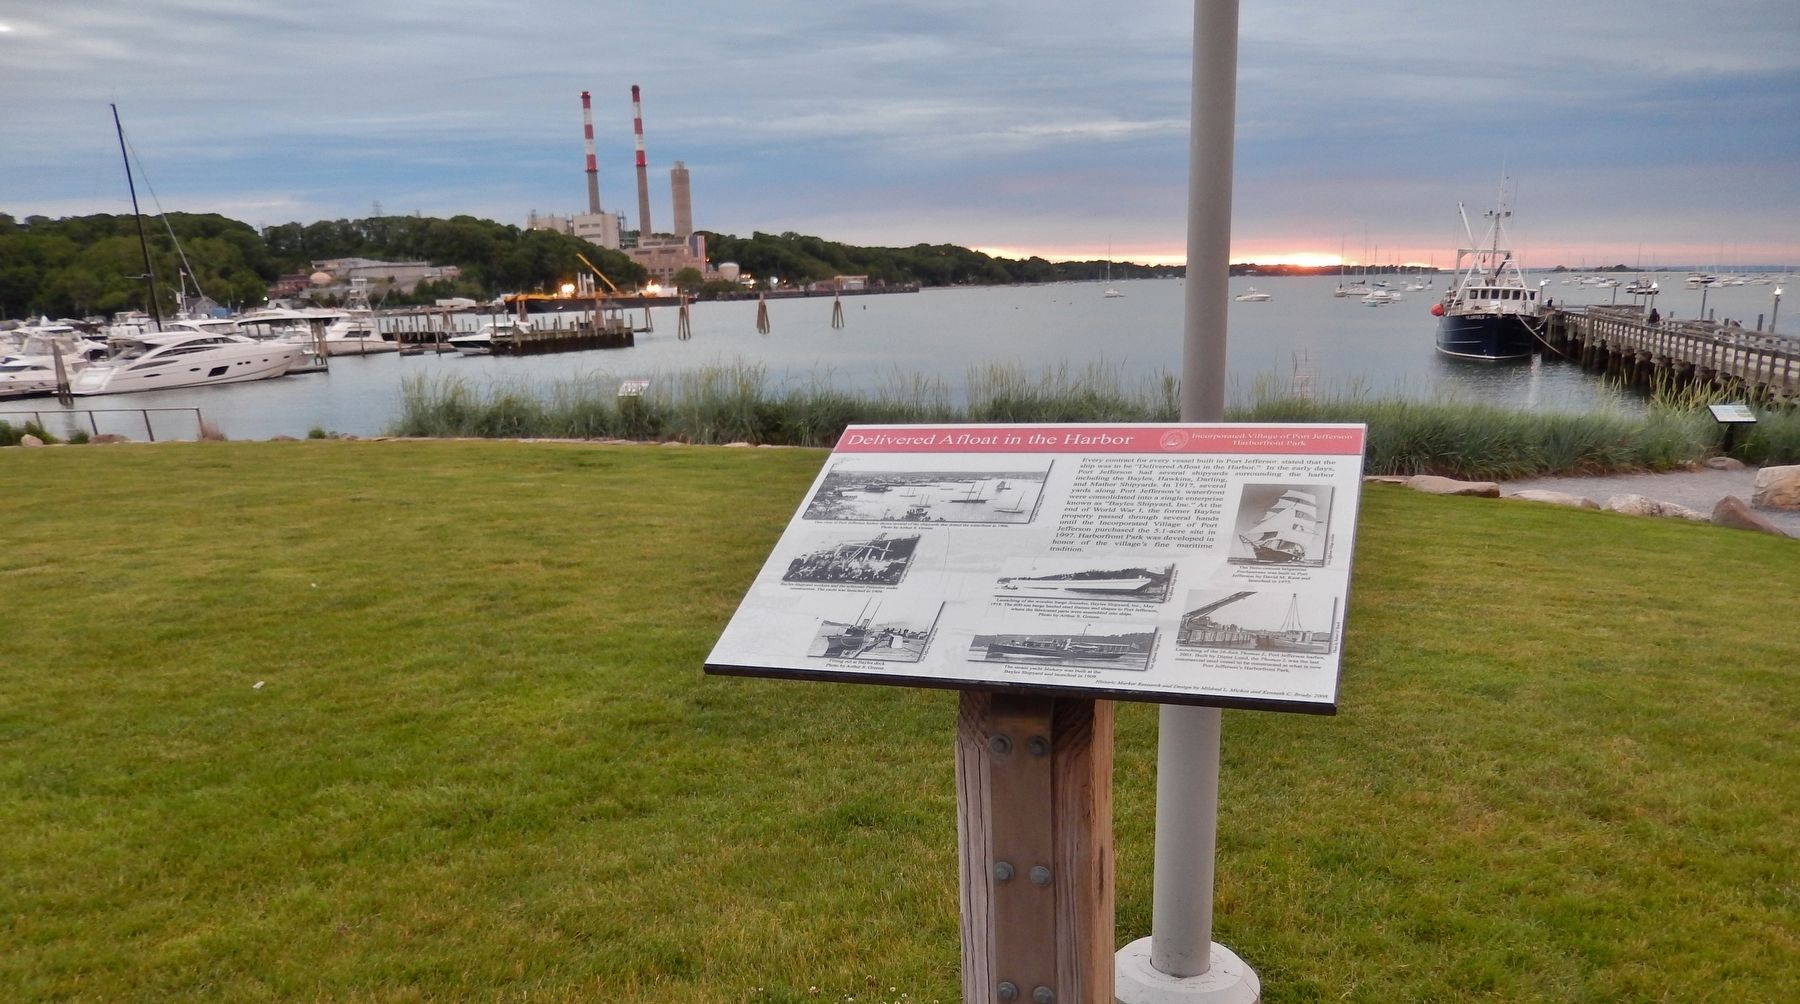 Delivered Afloat in the Harbor Marker (<i>wide view; overlooking the harbor</i>) image. Click for full size.